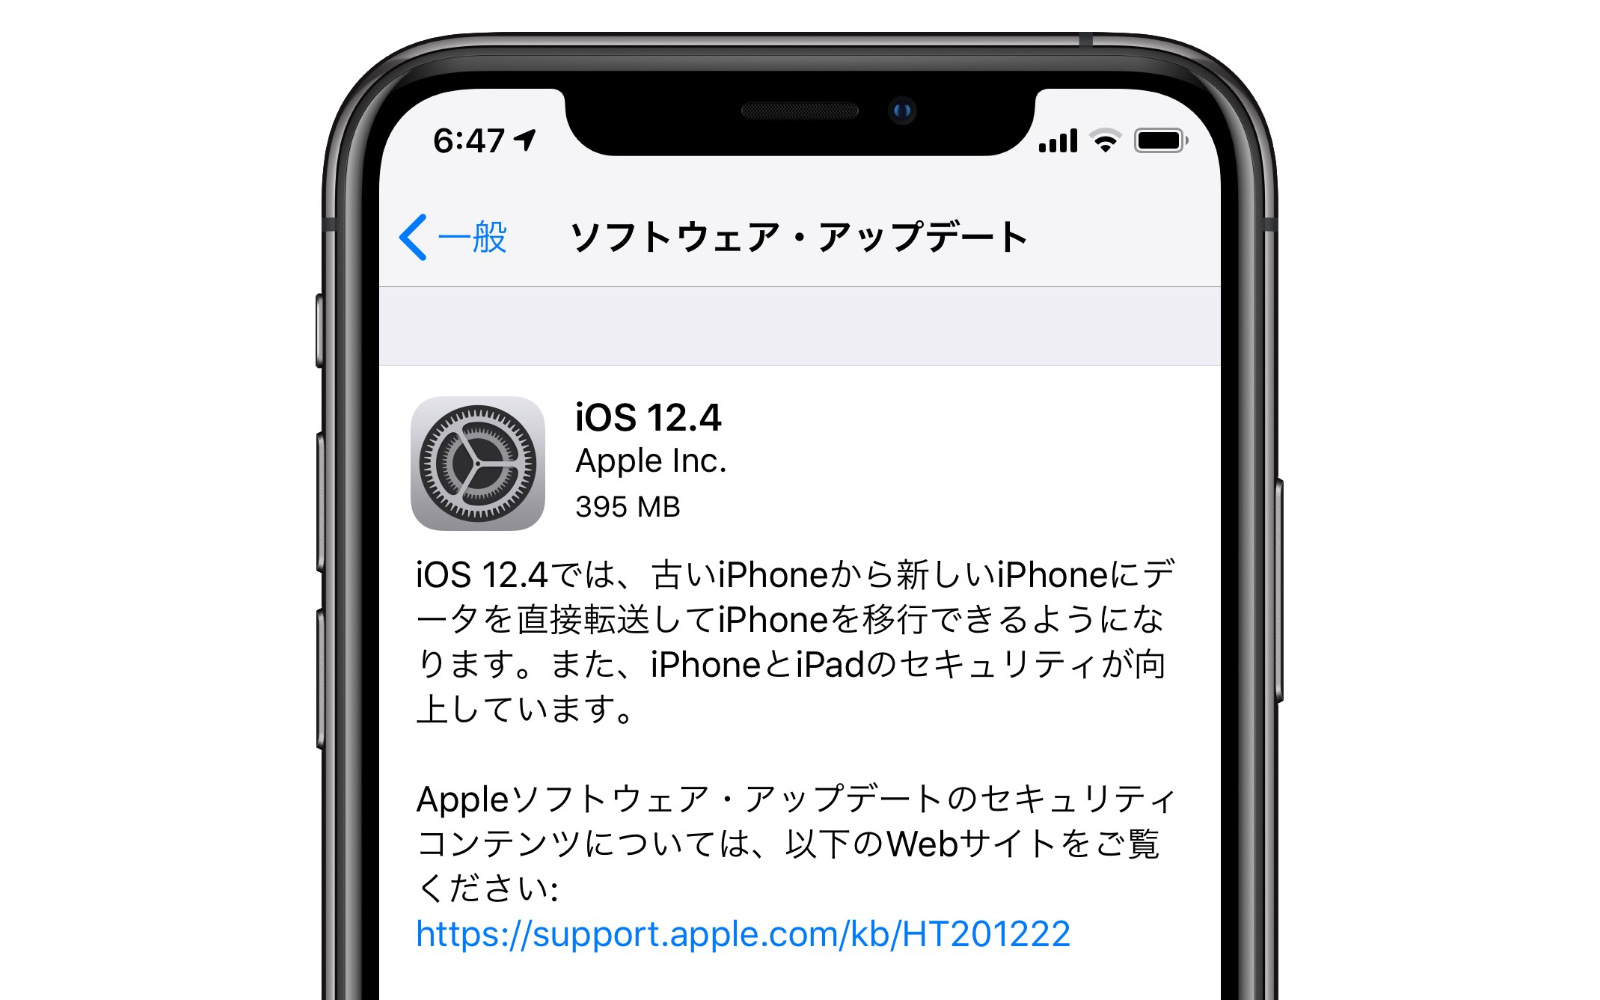 Apple iOS12 4 official release